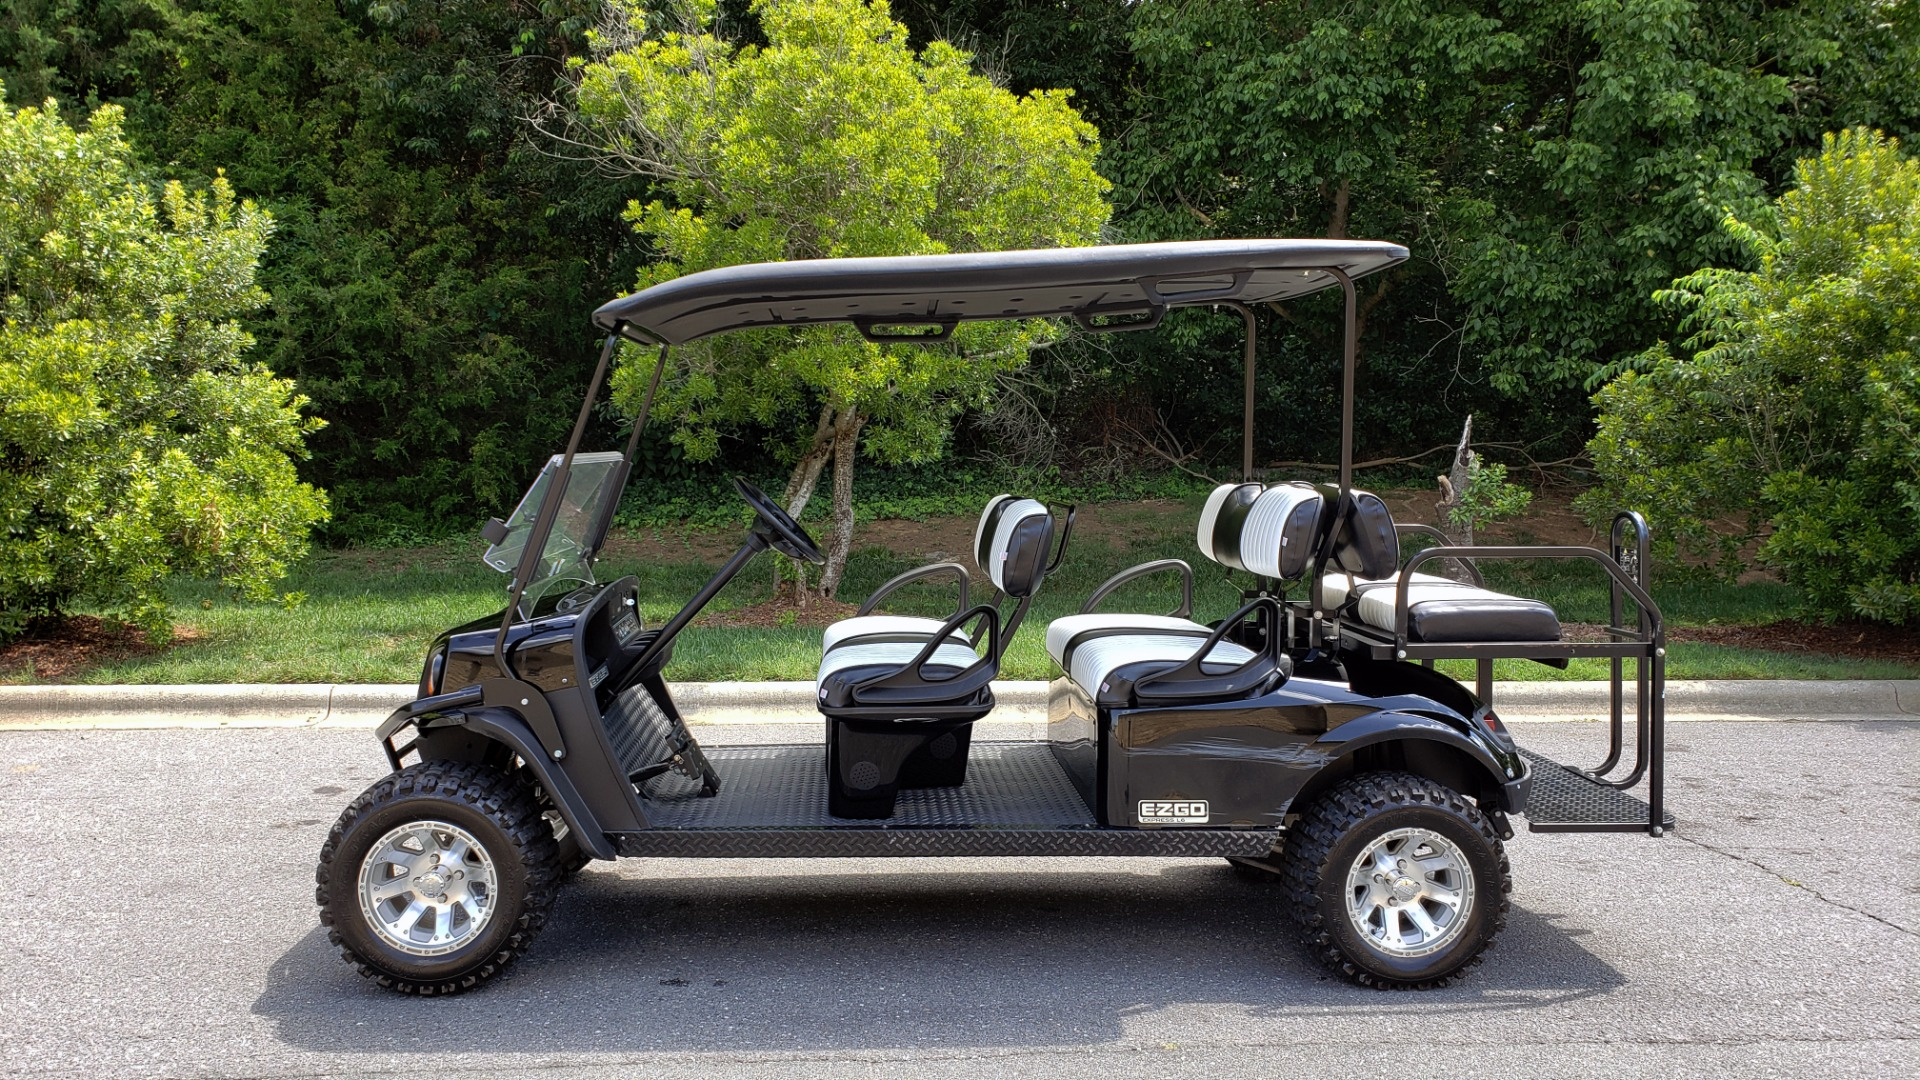 Used 2015 E-Z-GO EXPRESS J6 GOLF CART / 3-ROW / SEATS 6 / 12IN ALLOY WHEELS for sale $8,500 at Formula Imports in Charlotte NC 28227 2